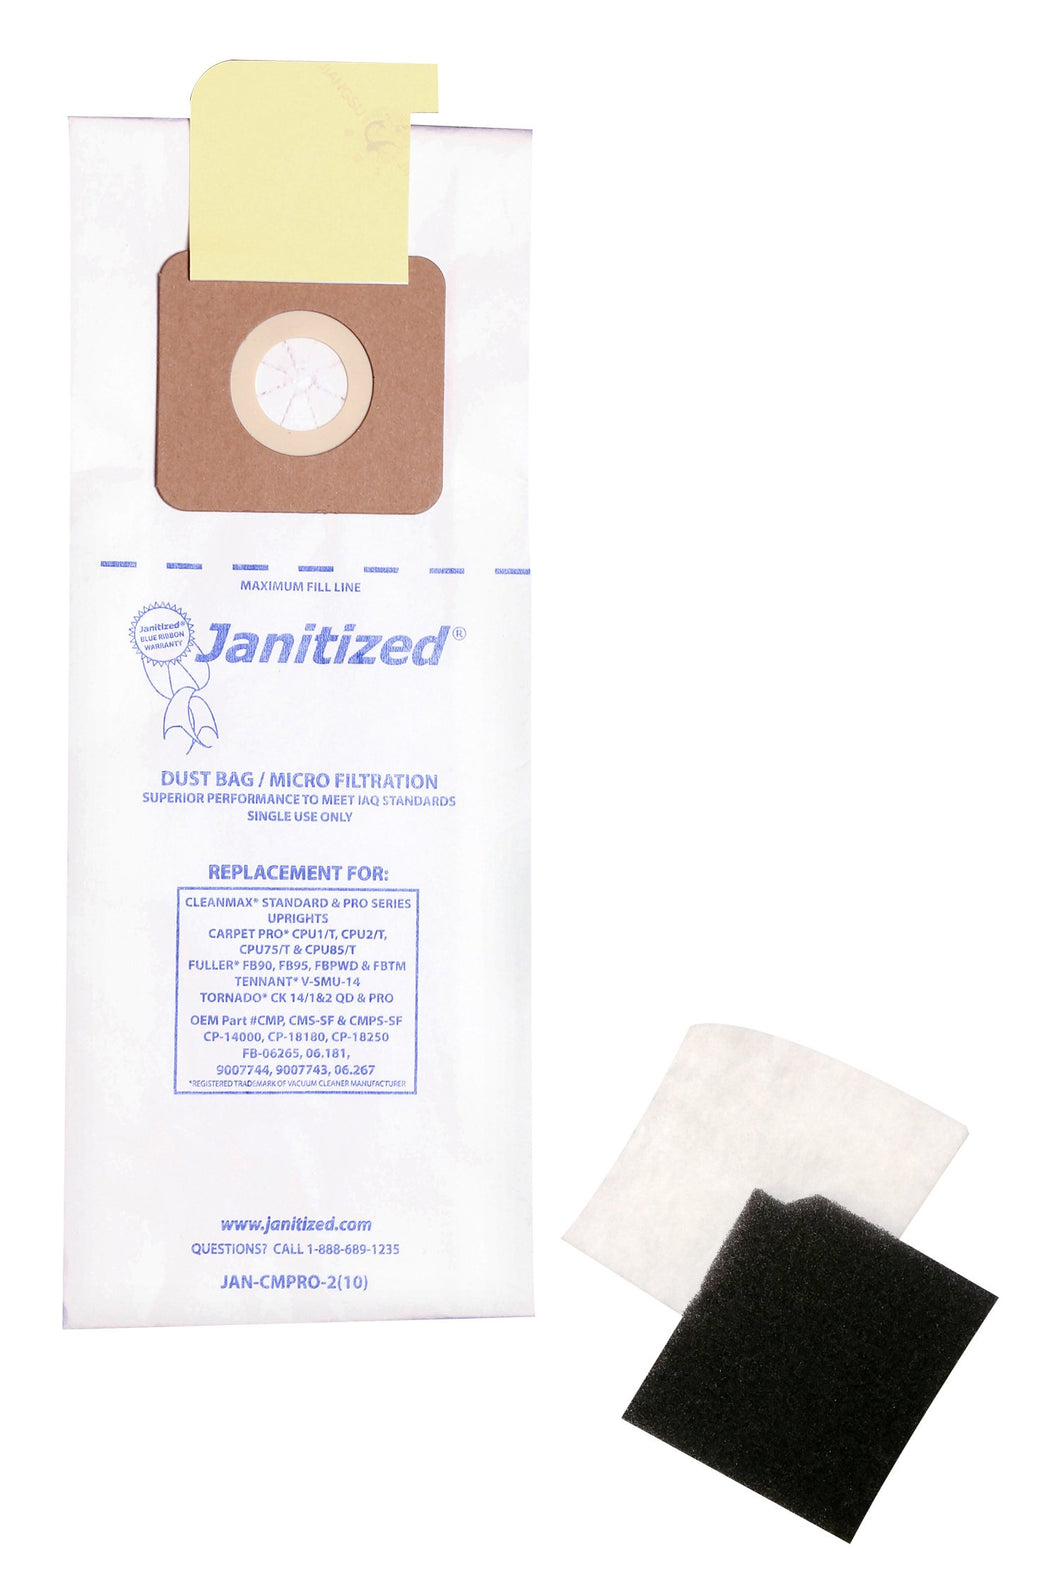 Janitized JAN-CMPRO-2(10) Paper Premium Replacement Commercial Vacuum Bag for CleanMax Standard & Pro, Tennant V-SMU-14, Tornado CK QD & Pro, CarpetPro CPU & Fuller FB-06265 Vacuum Cleaners(10 - 10 packs)